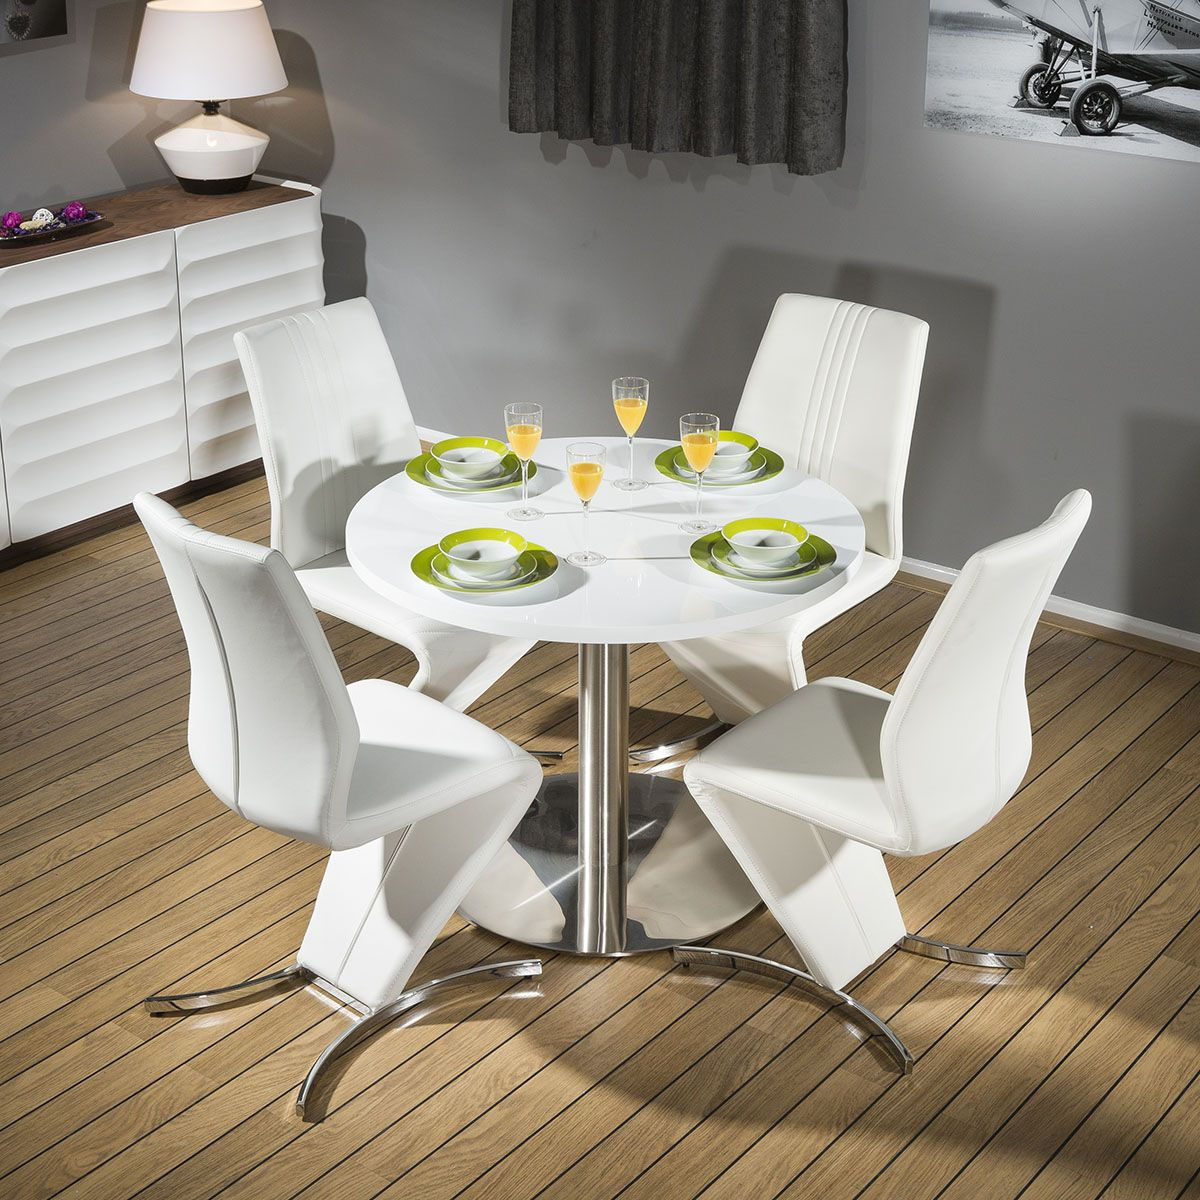 Round Dining Set White 1000mm Dia Corian Table 4 X White 3104